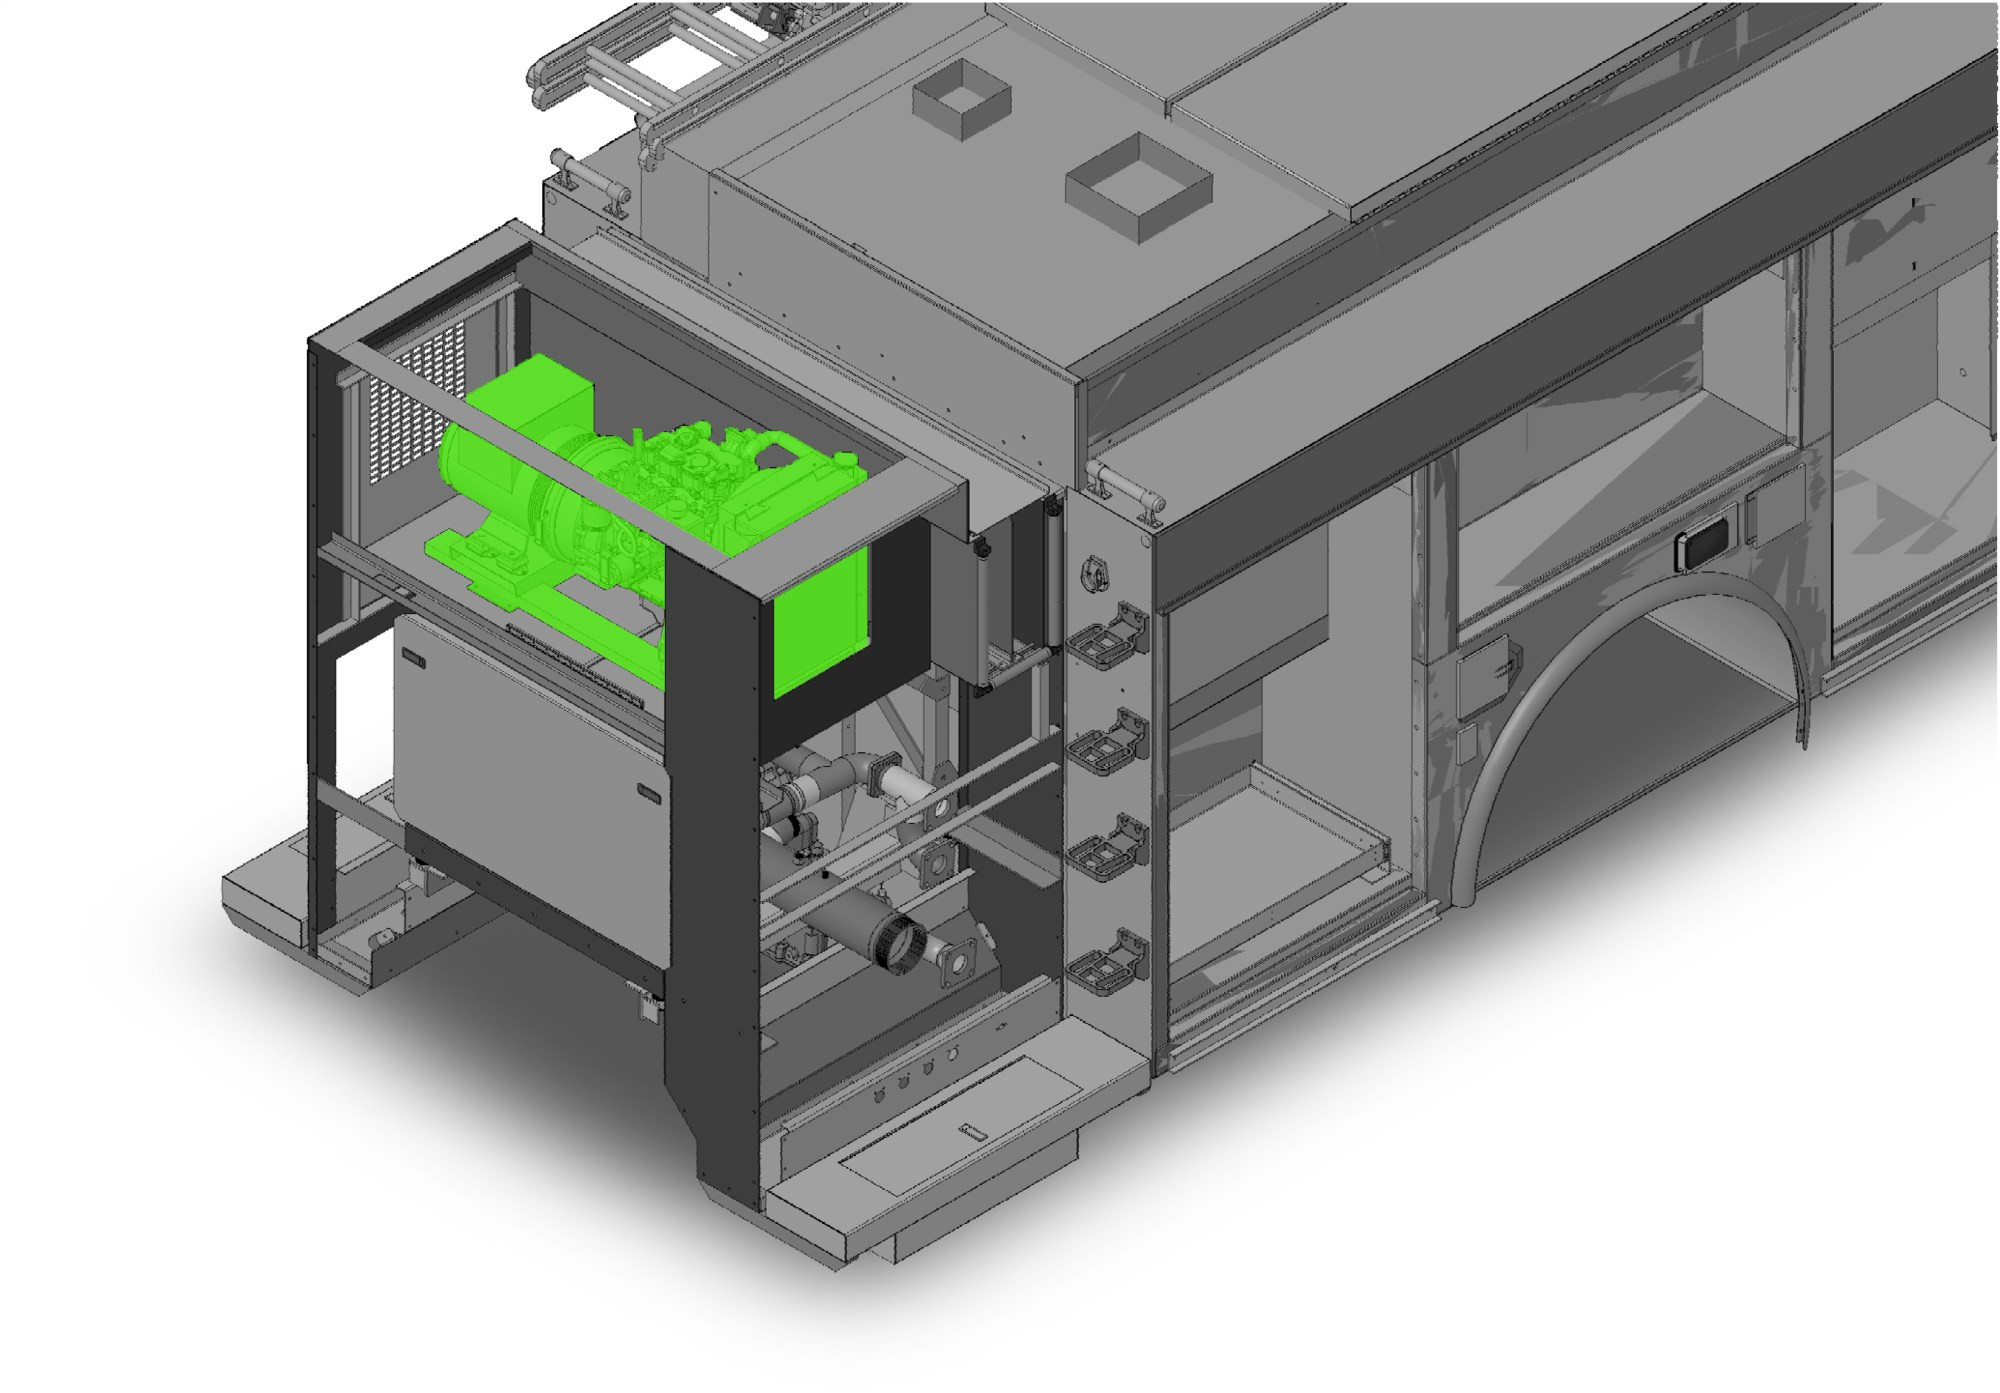 hight resolution of schematic of apu location on fire apparatus main body